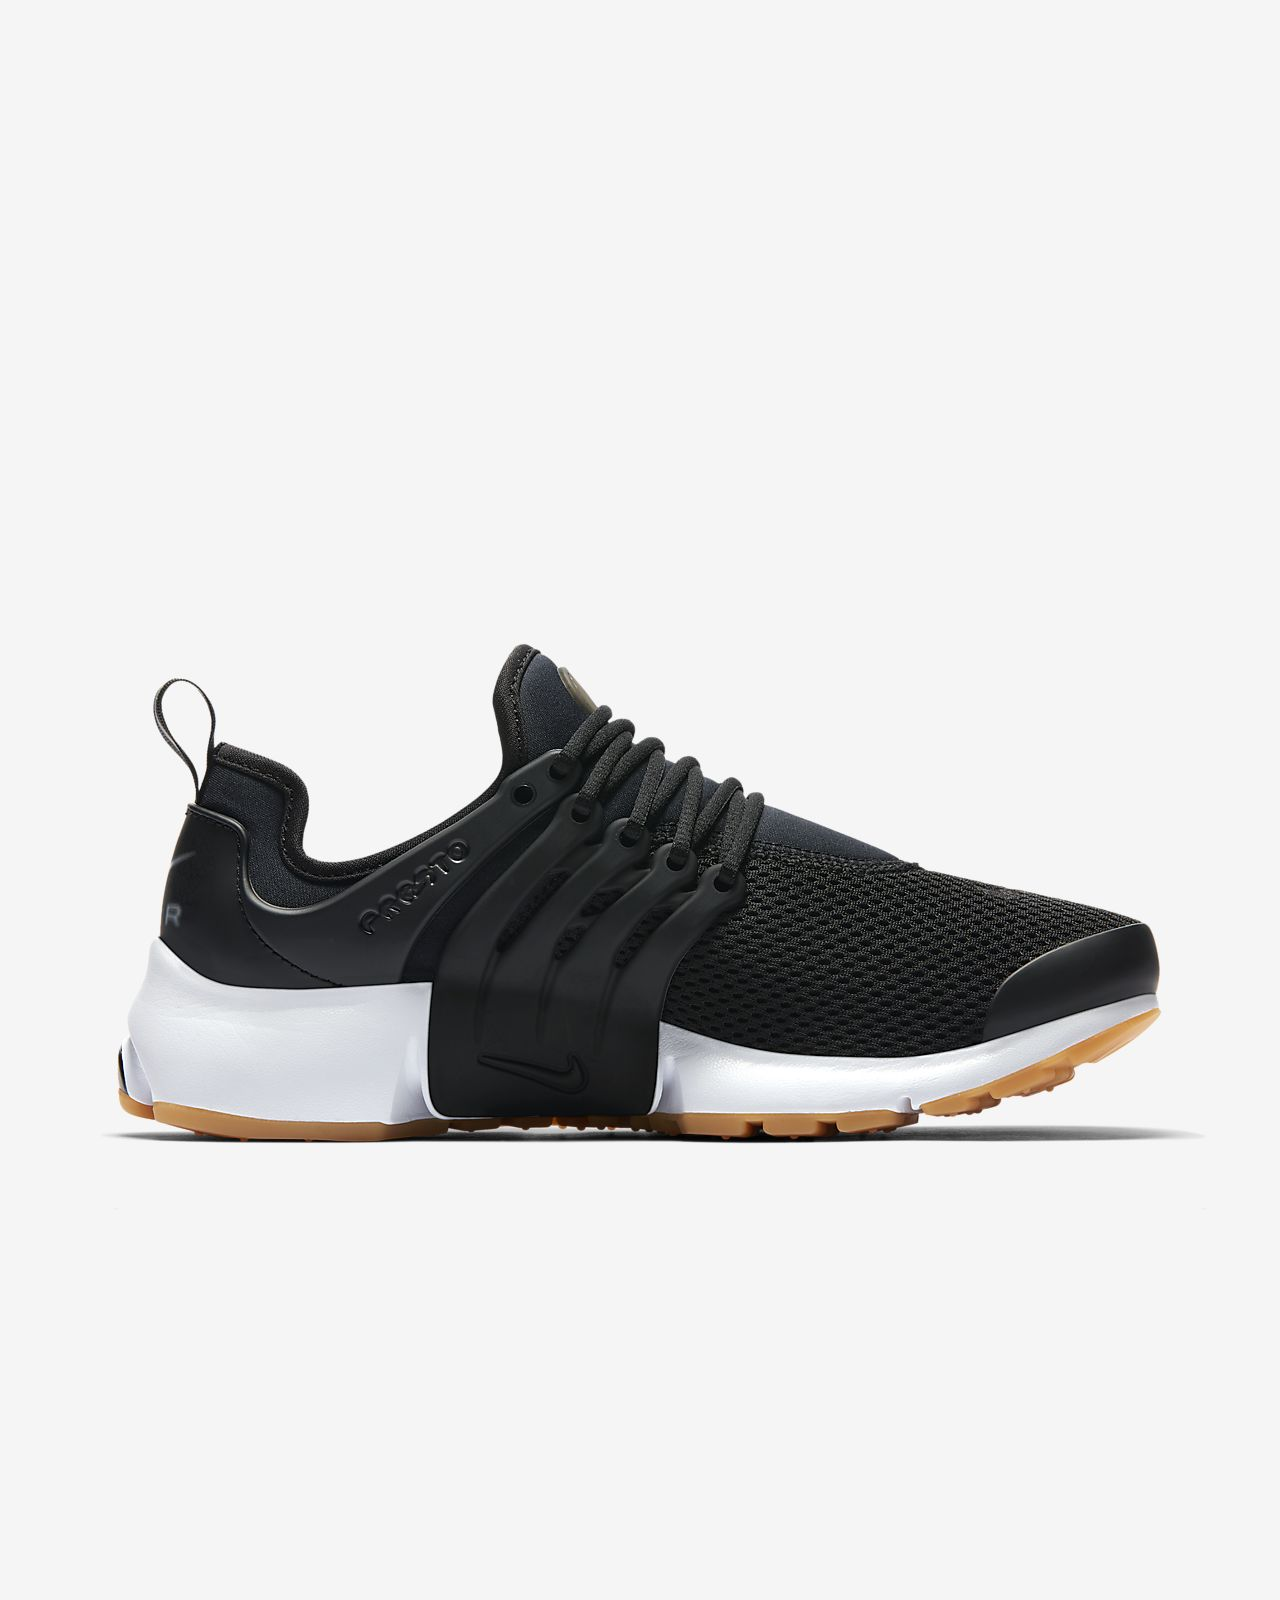 watch 63ec6 9e1e1 ... Nike Air Presto Women s Shoe